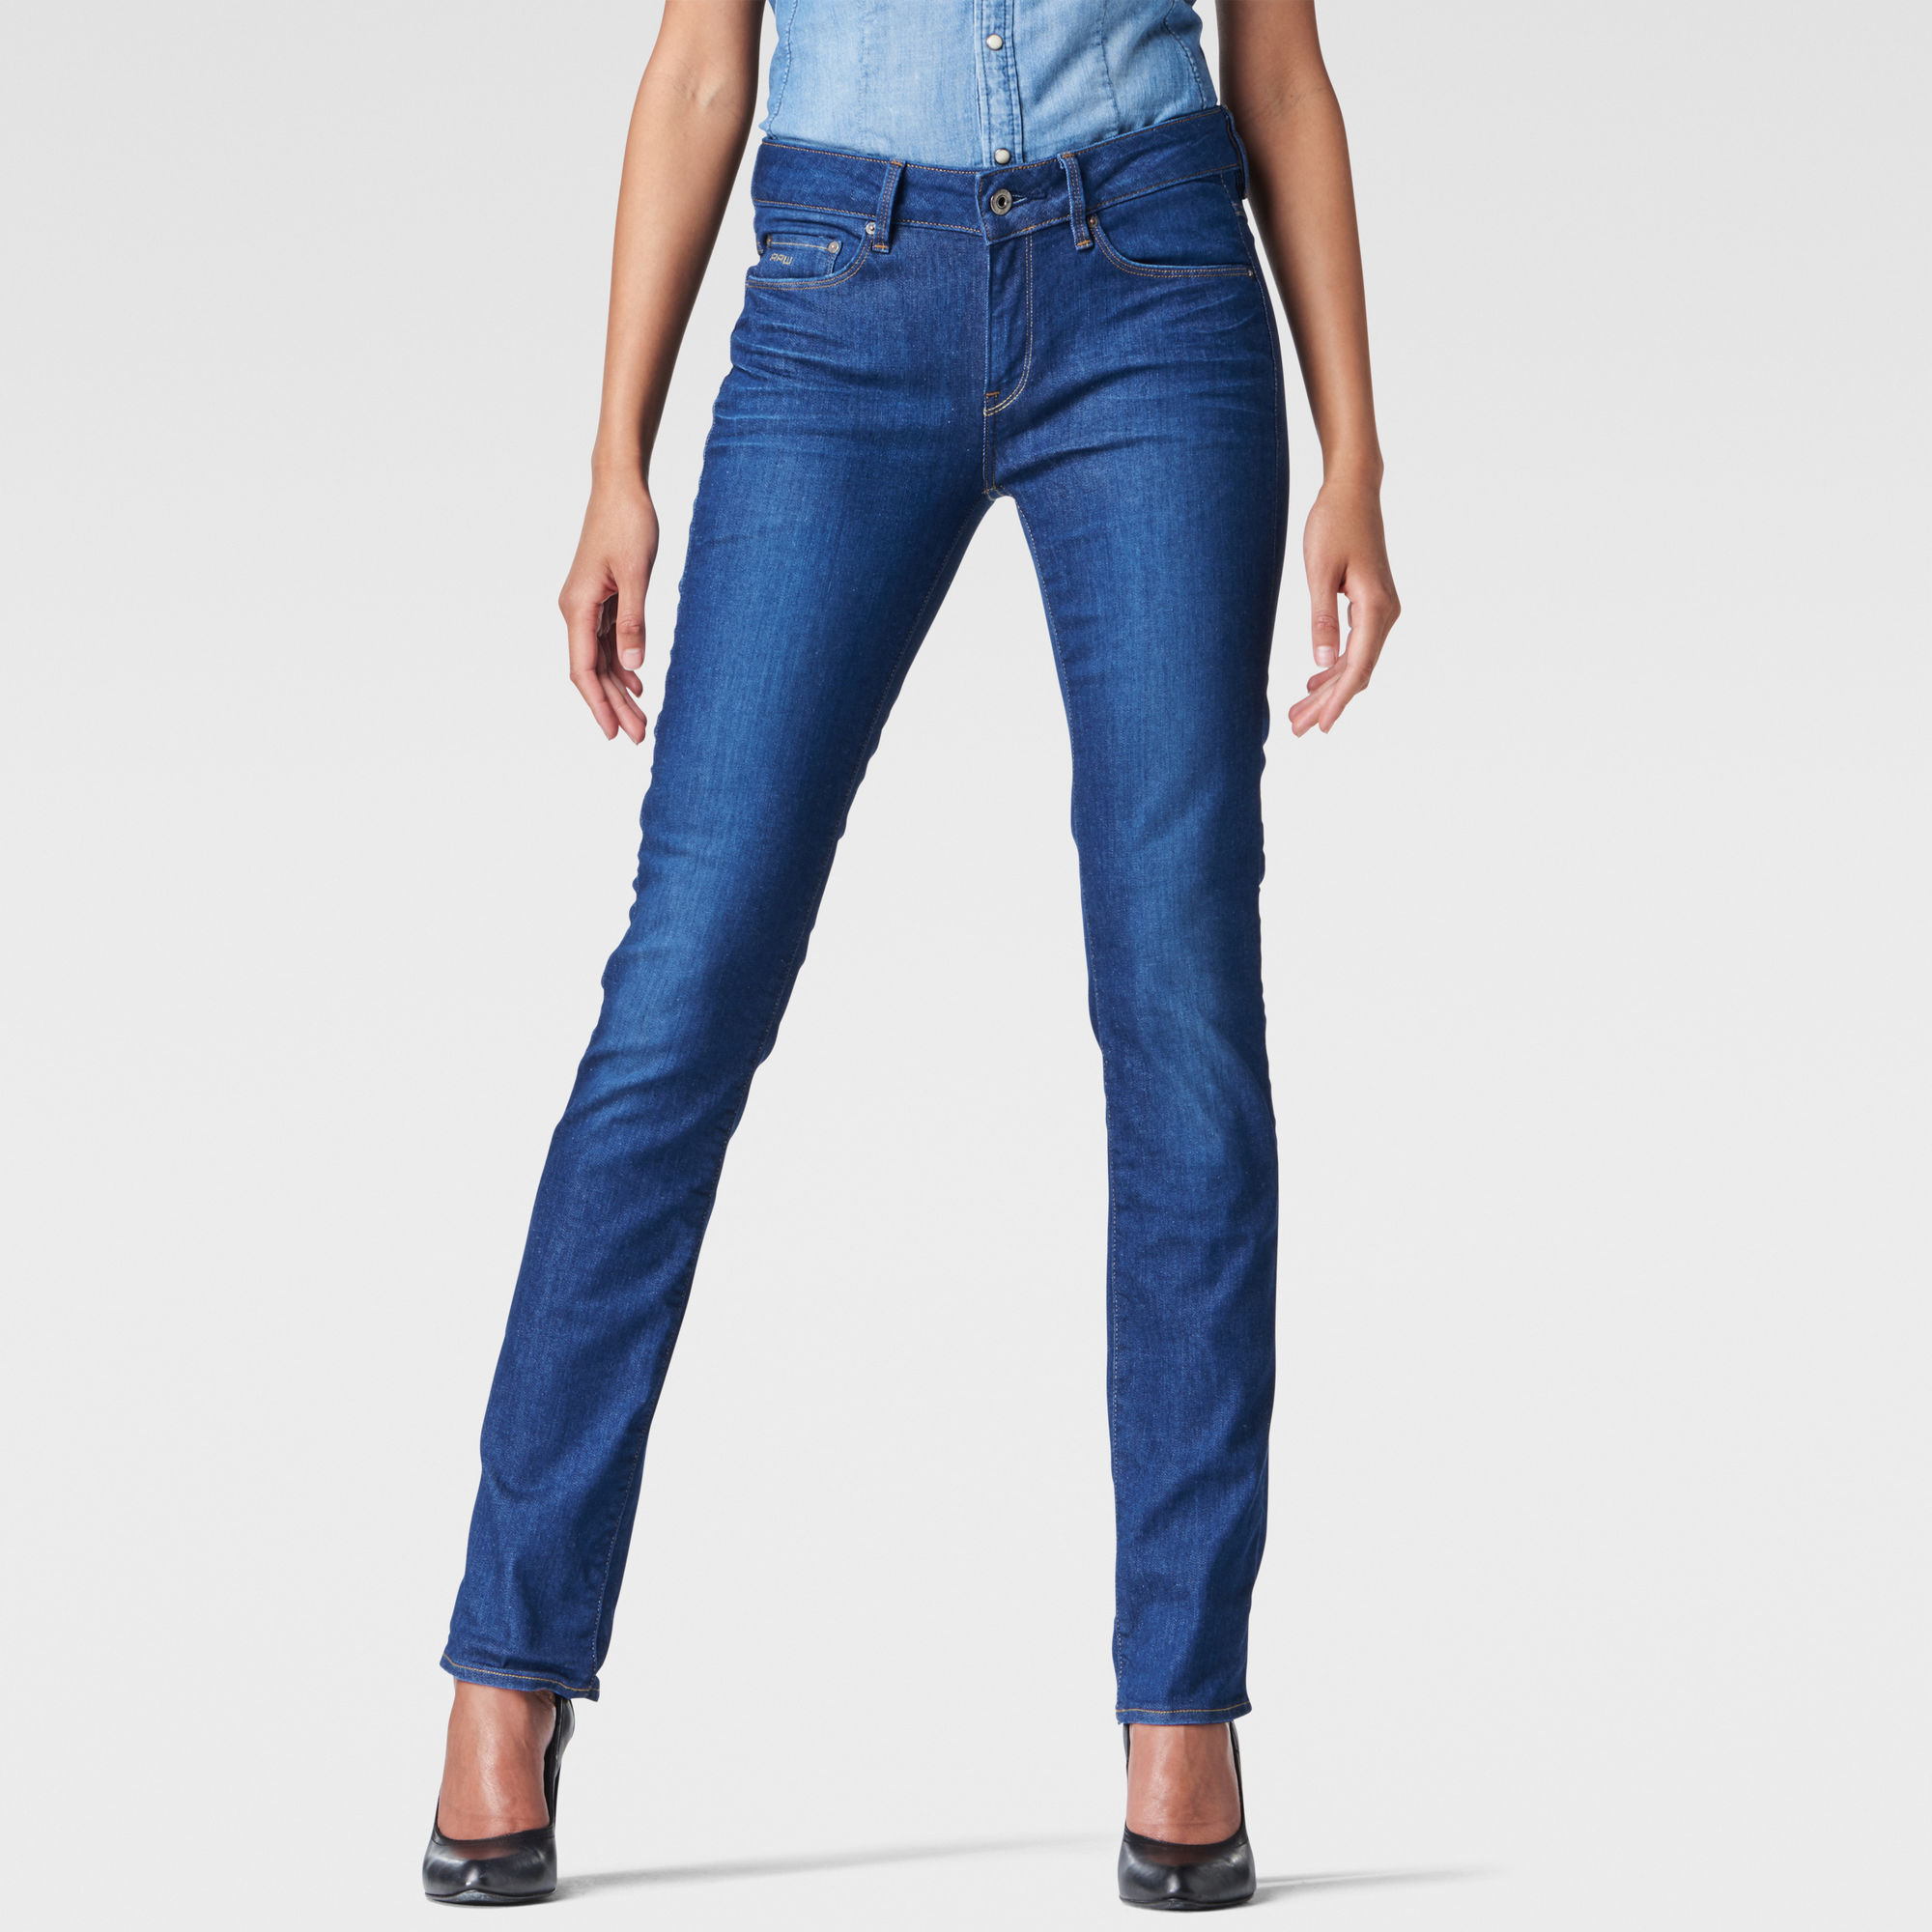 Image of G Star Raw 3301 Contour High Waist Straight Jeans